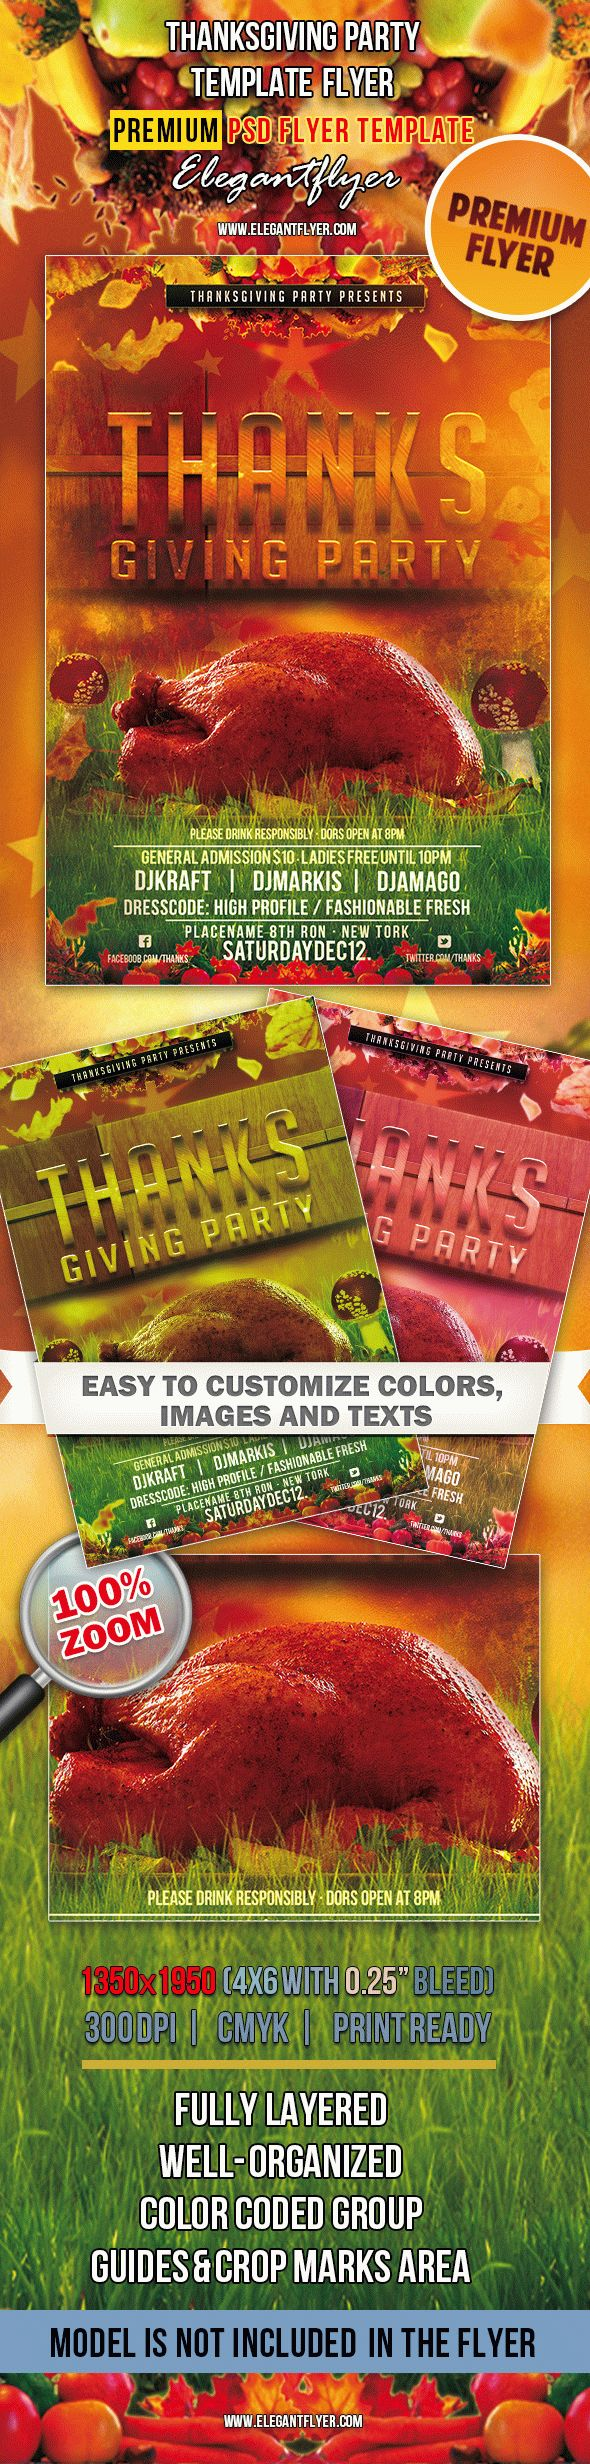 Thanksgiving Party – Premium Club flyer PSD Template